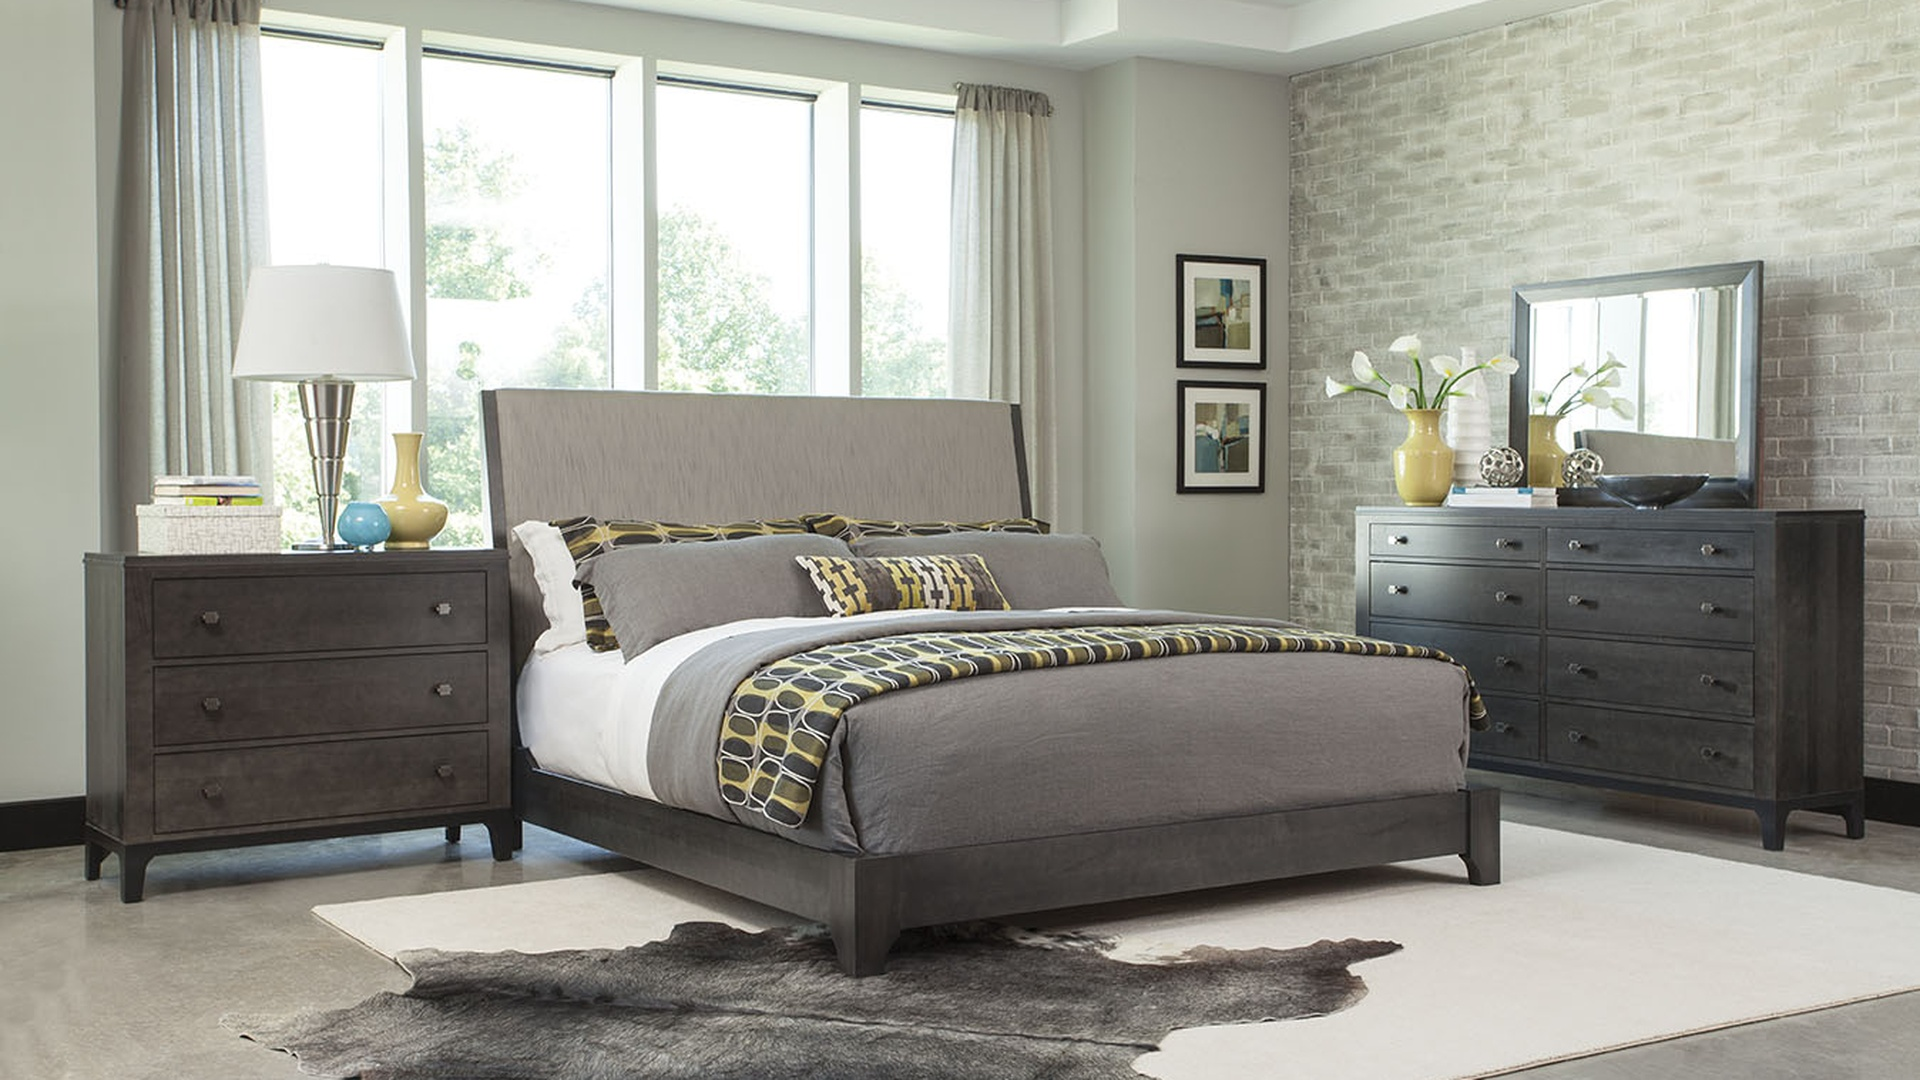 Canada Bed Solid Wood Timeless Style Since 1899 Durham Furniture